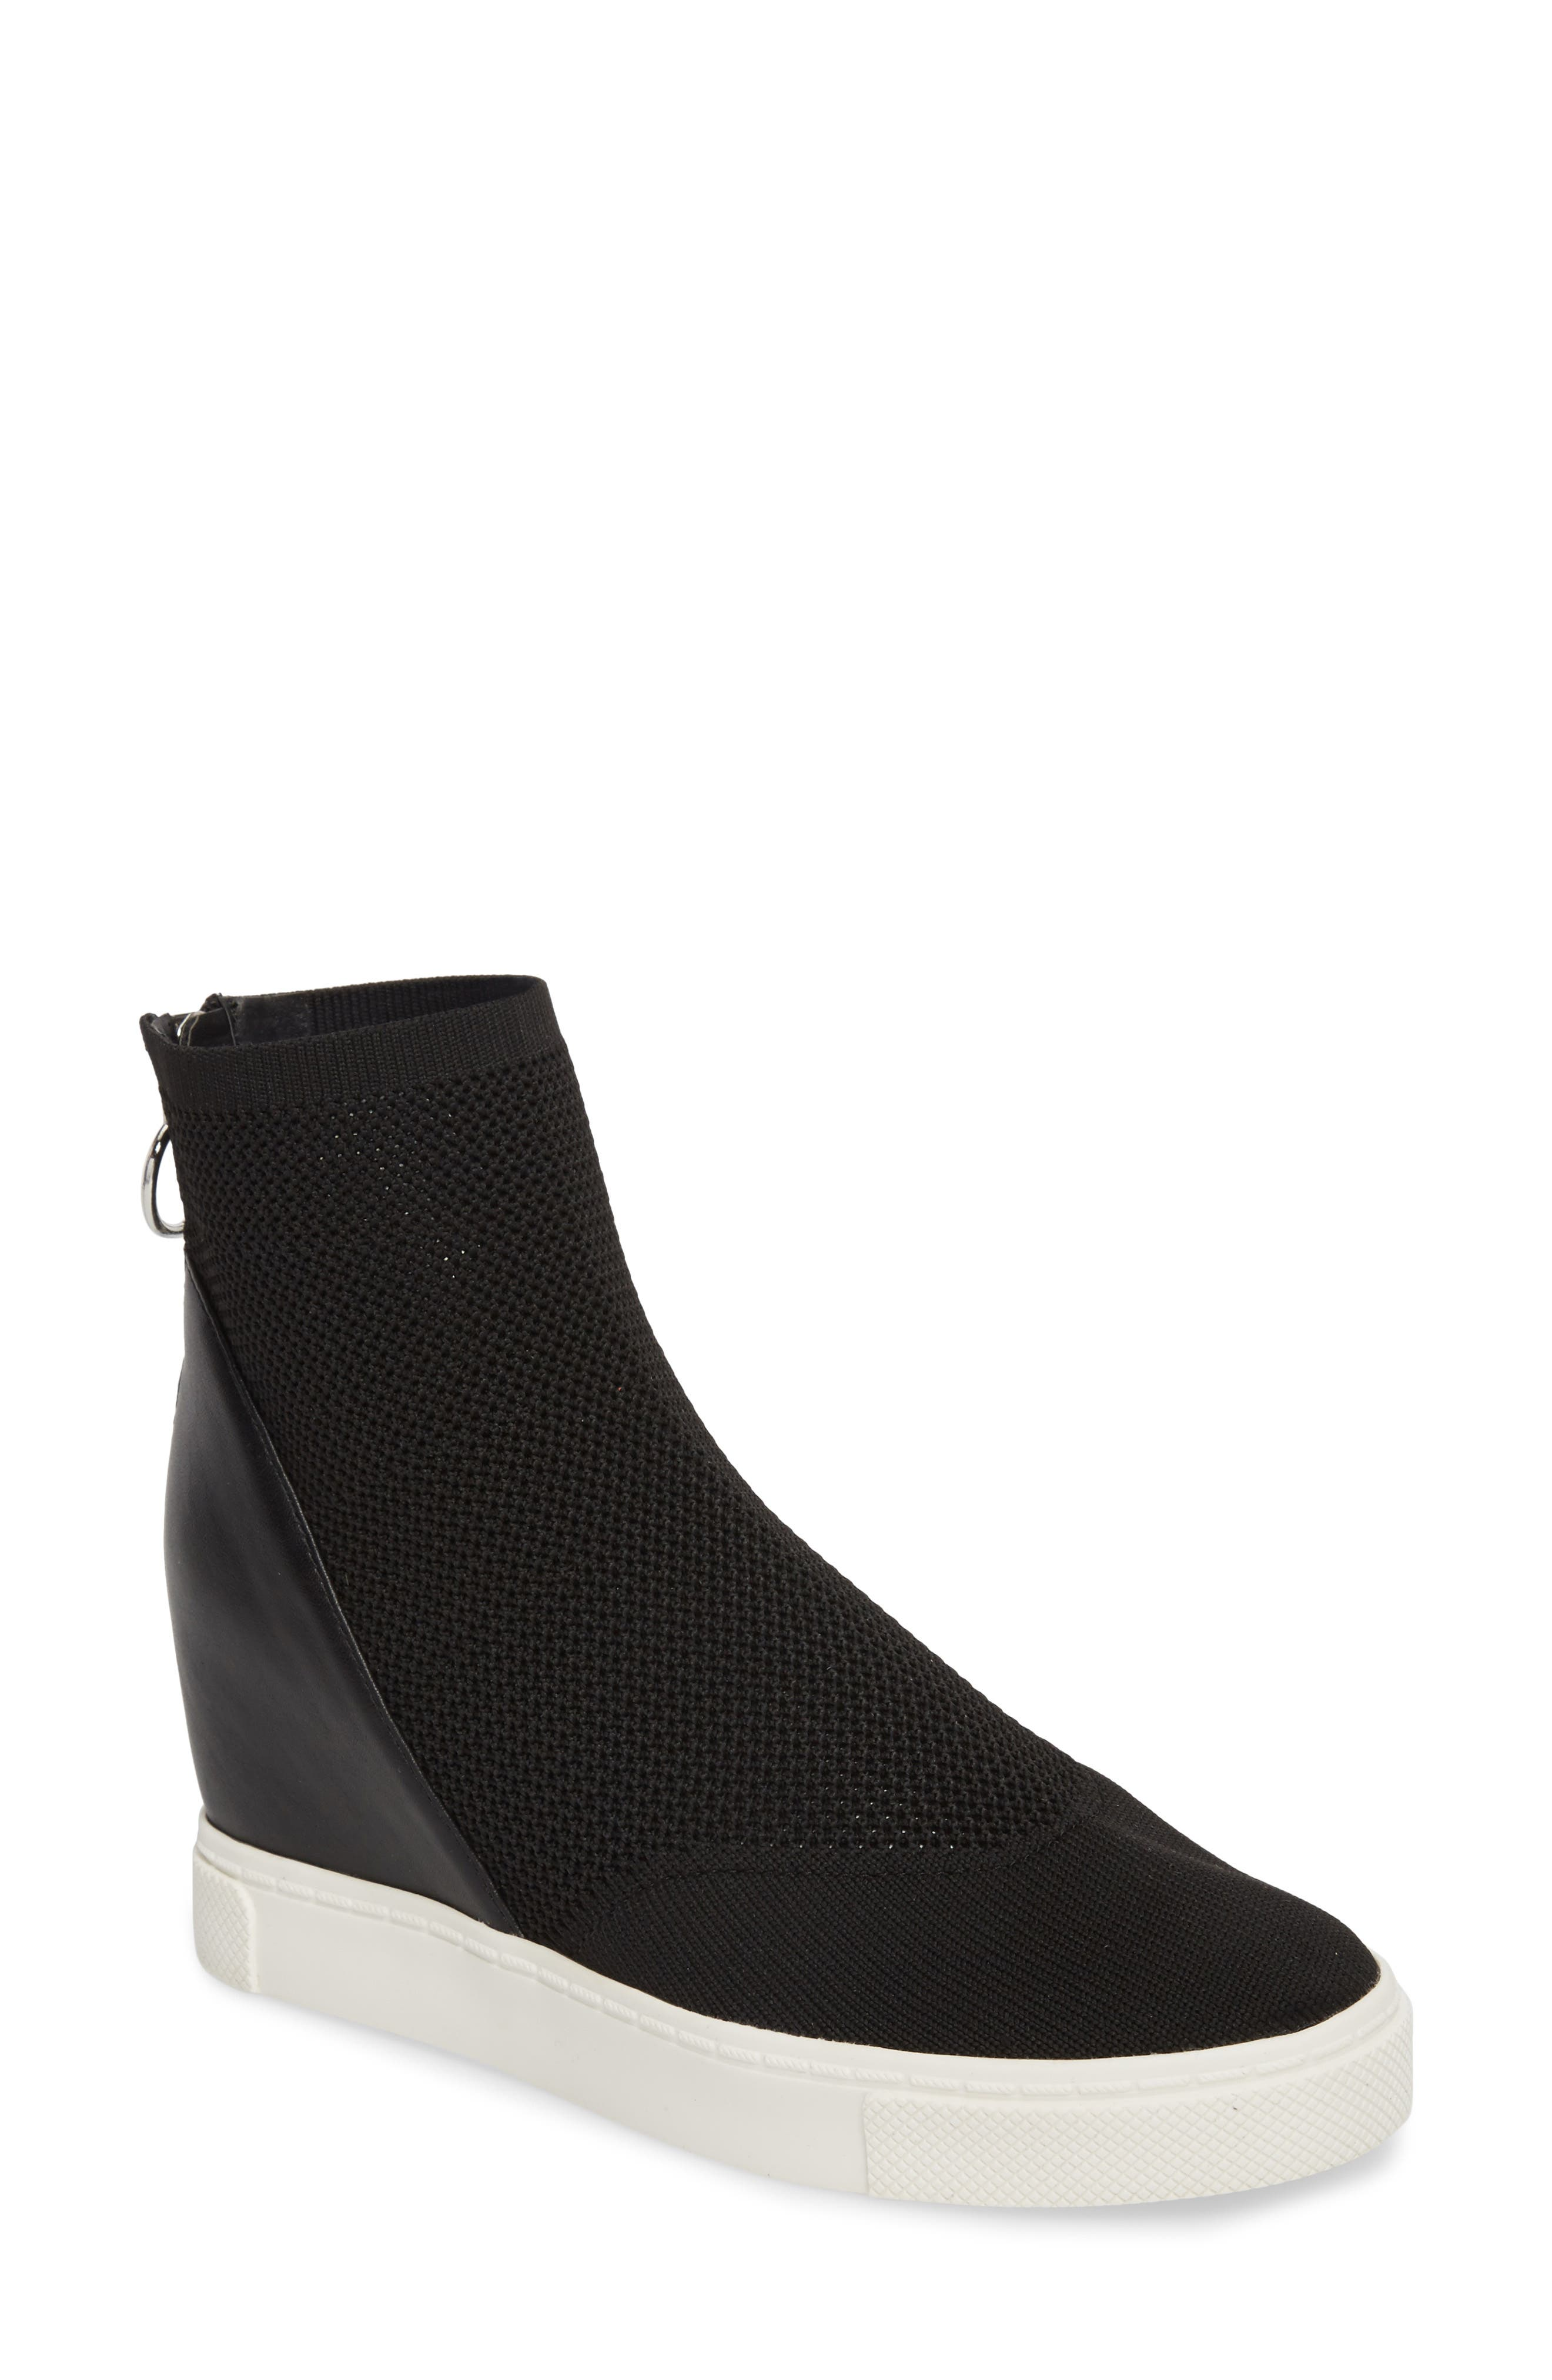 Lizzy Sneaker Bootie,                             Main thumbnail 1, color,